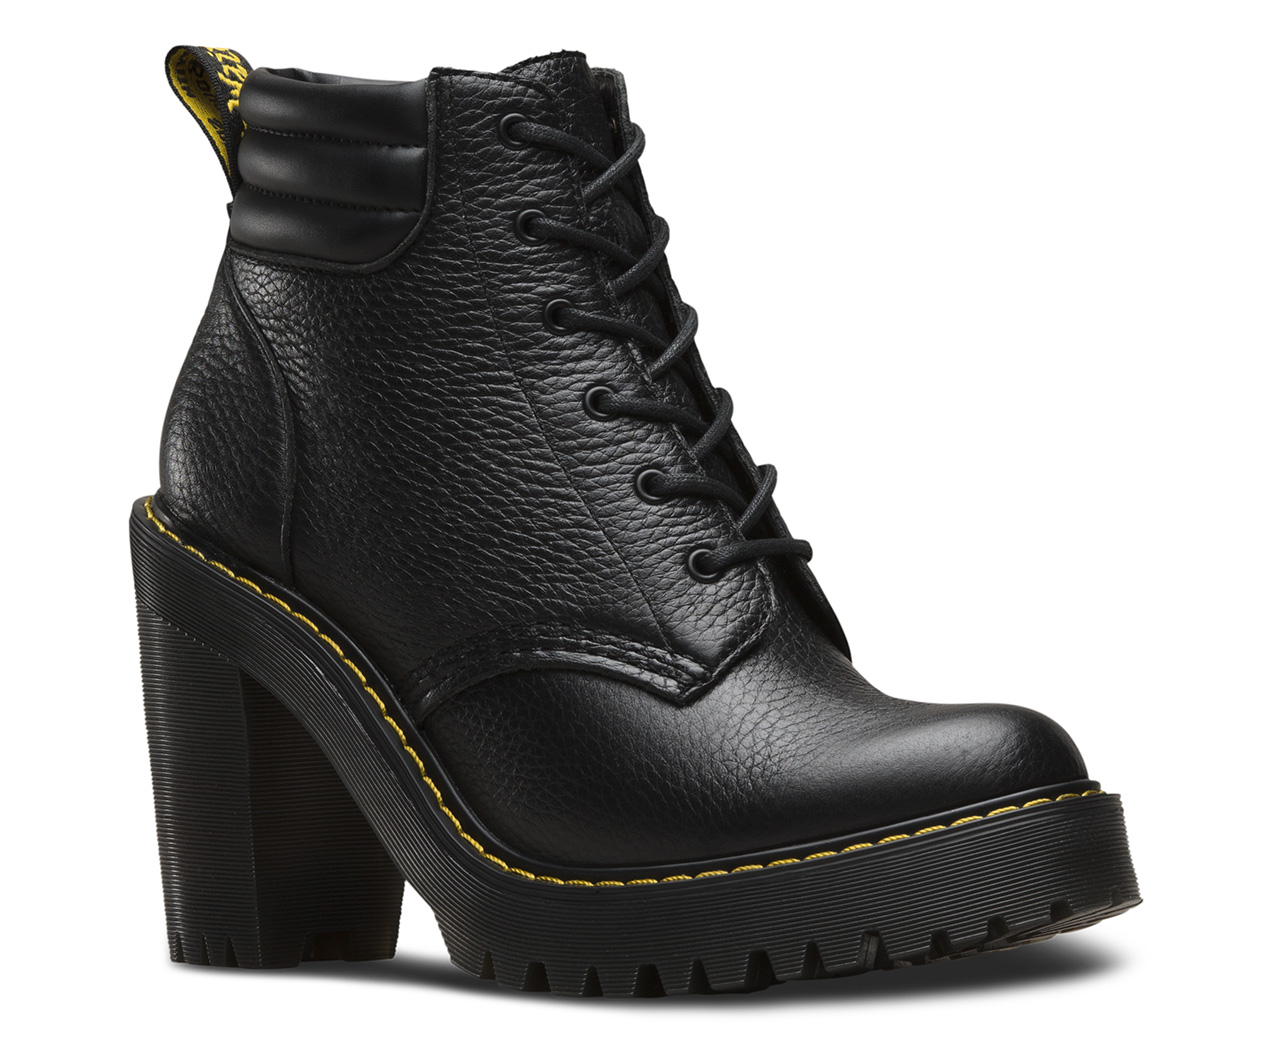 Persephone Aunt Sally Women S Boots Amp Shoes Official